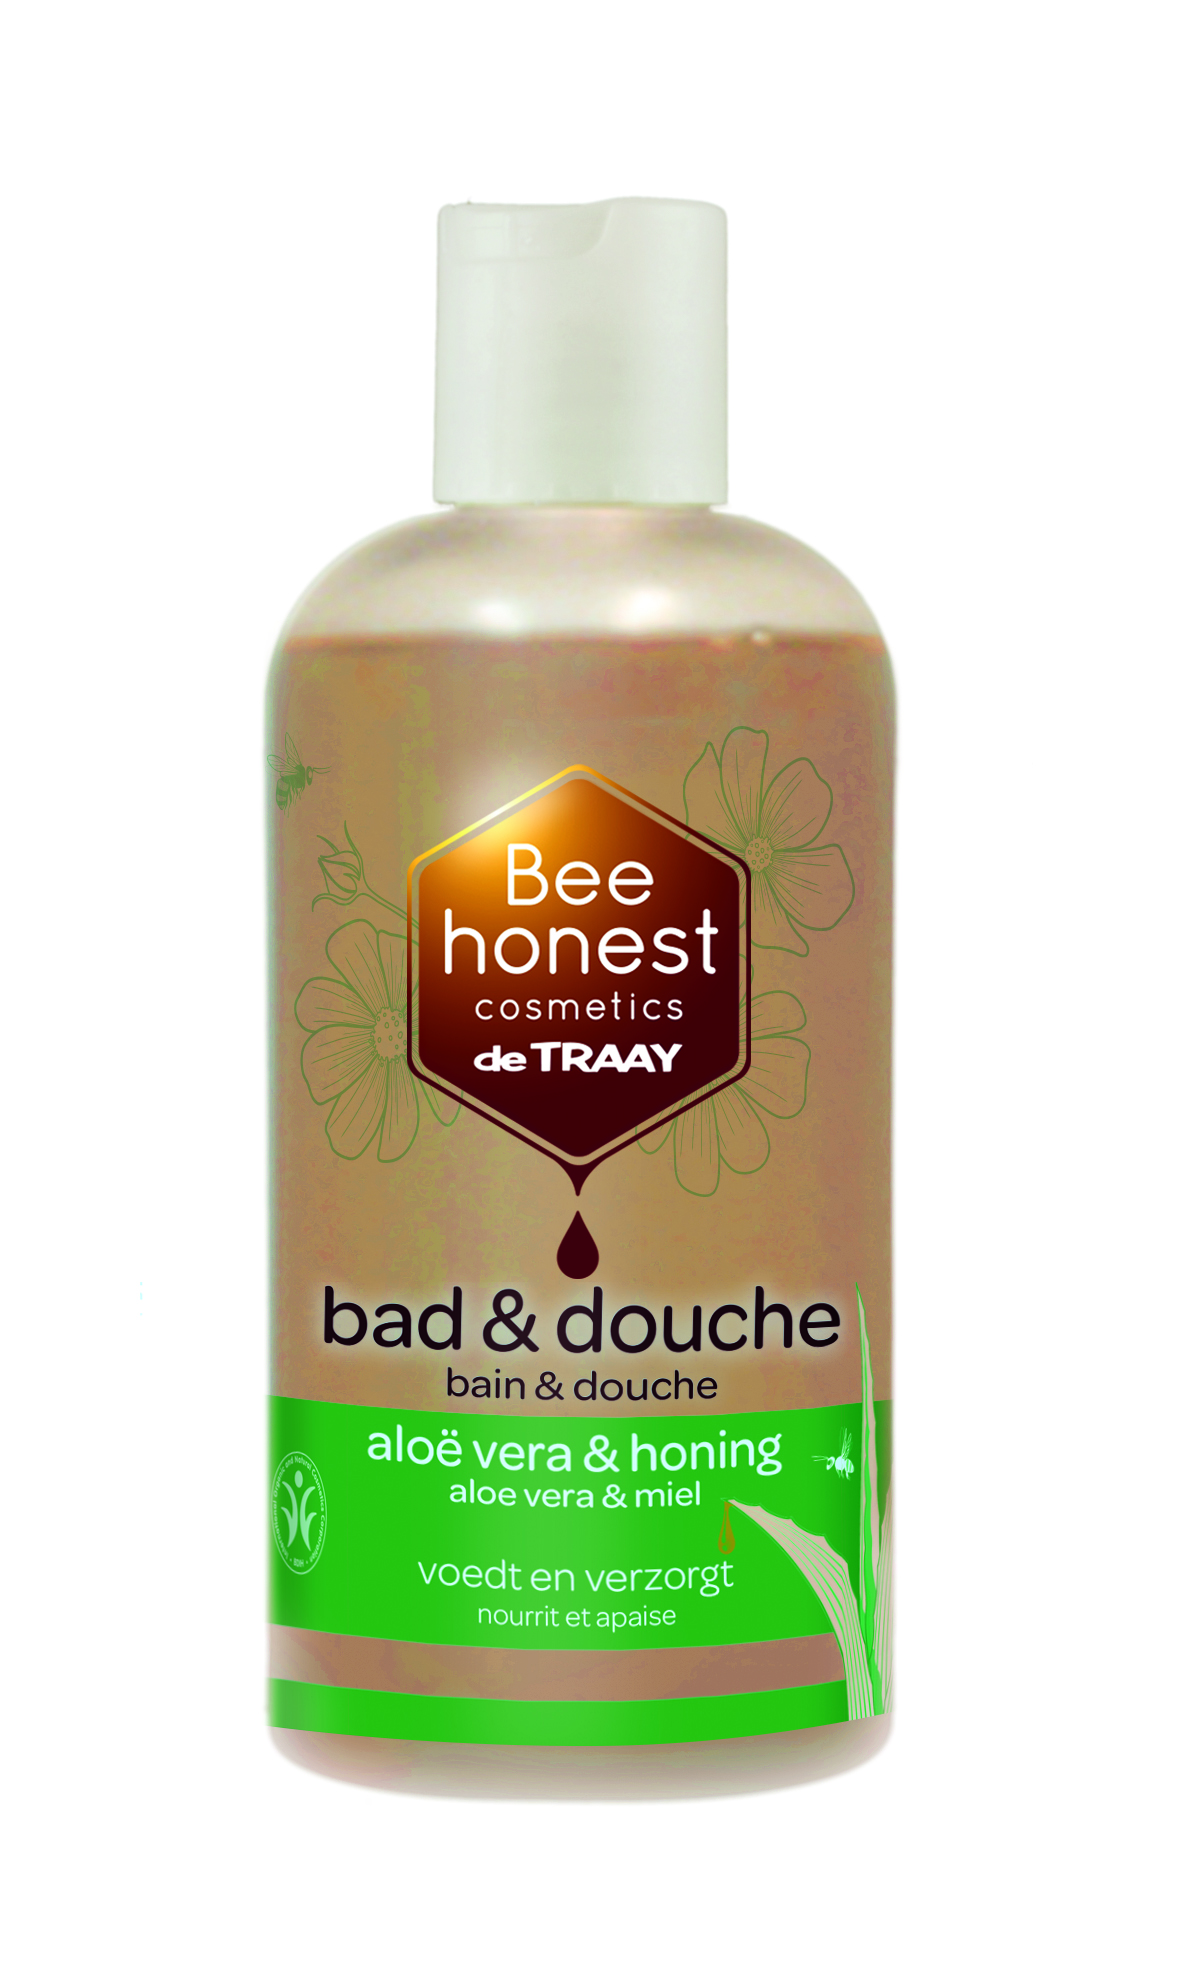 Bath & Shower Aloe vera/honey